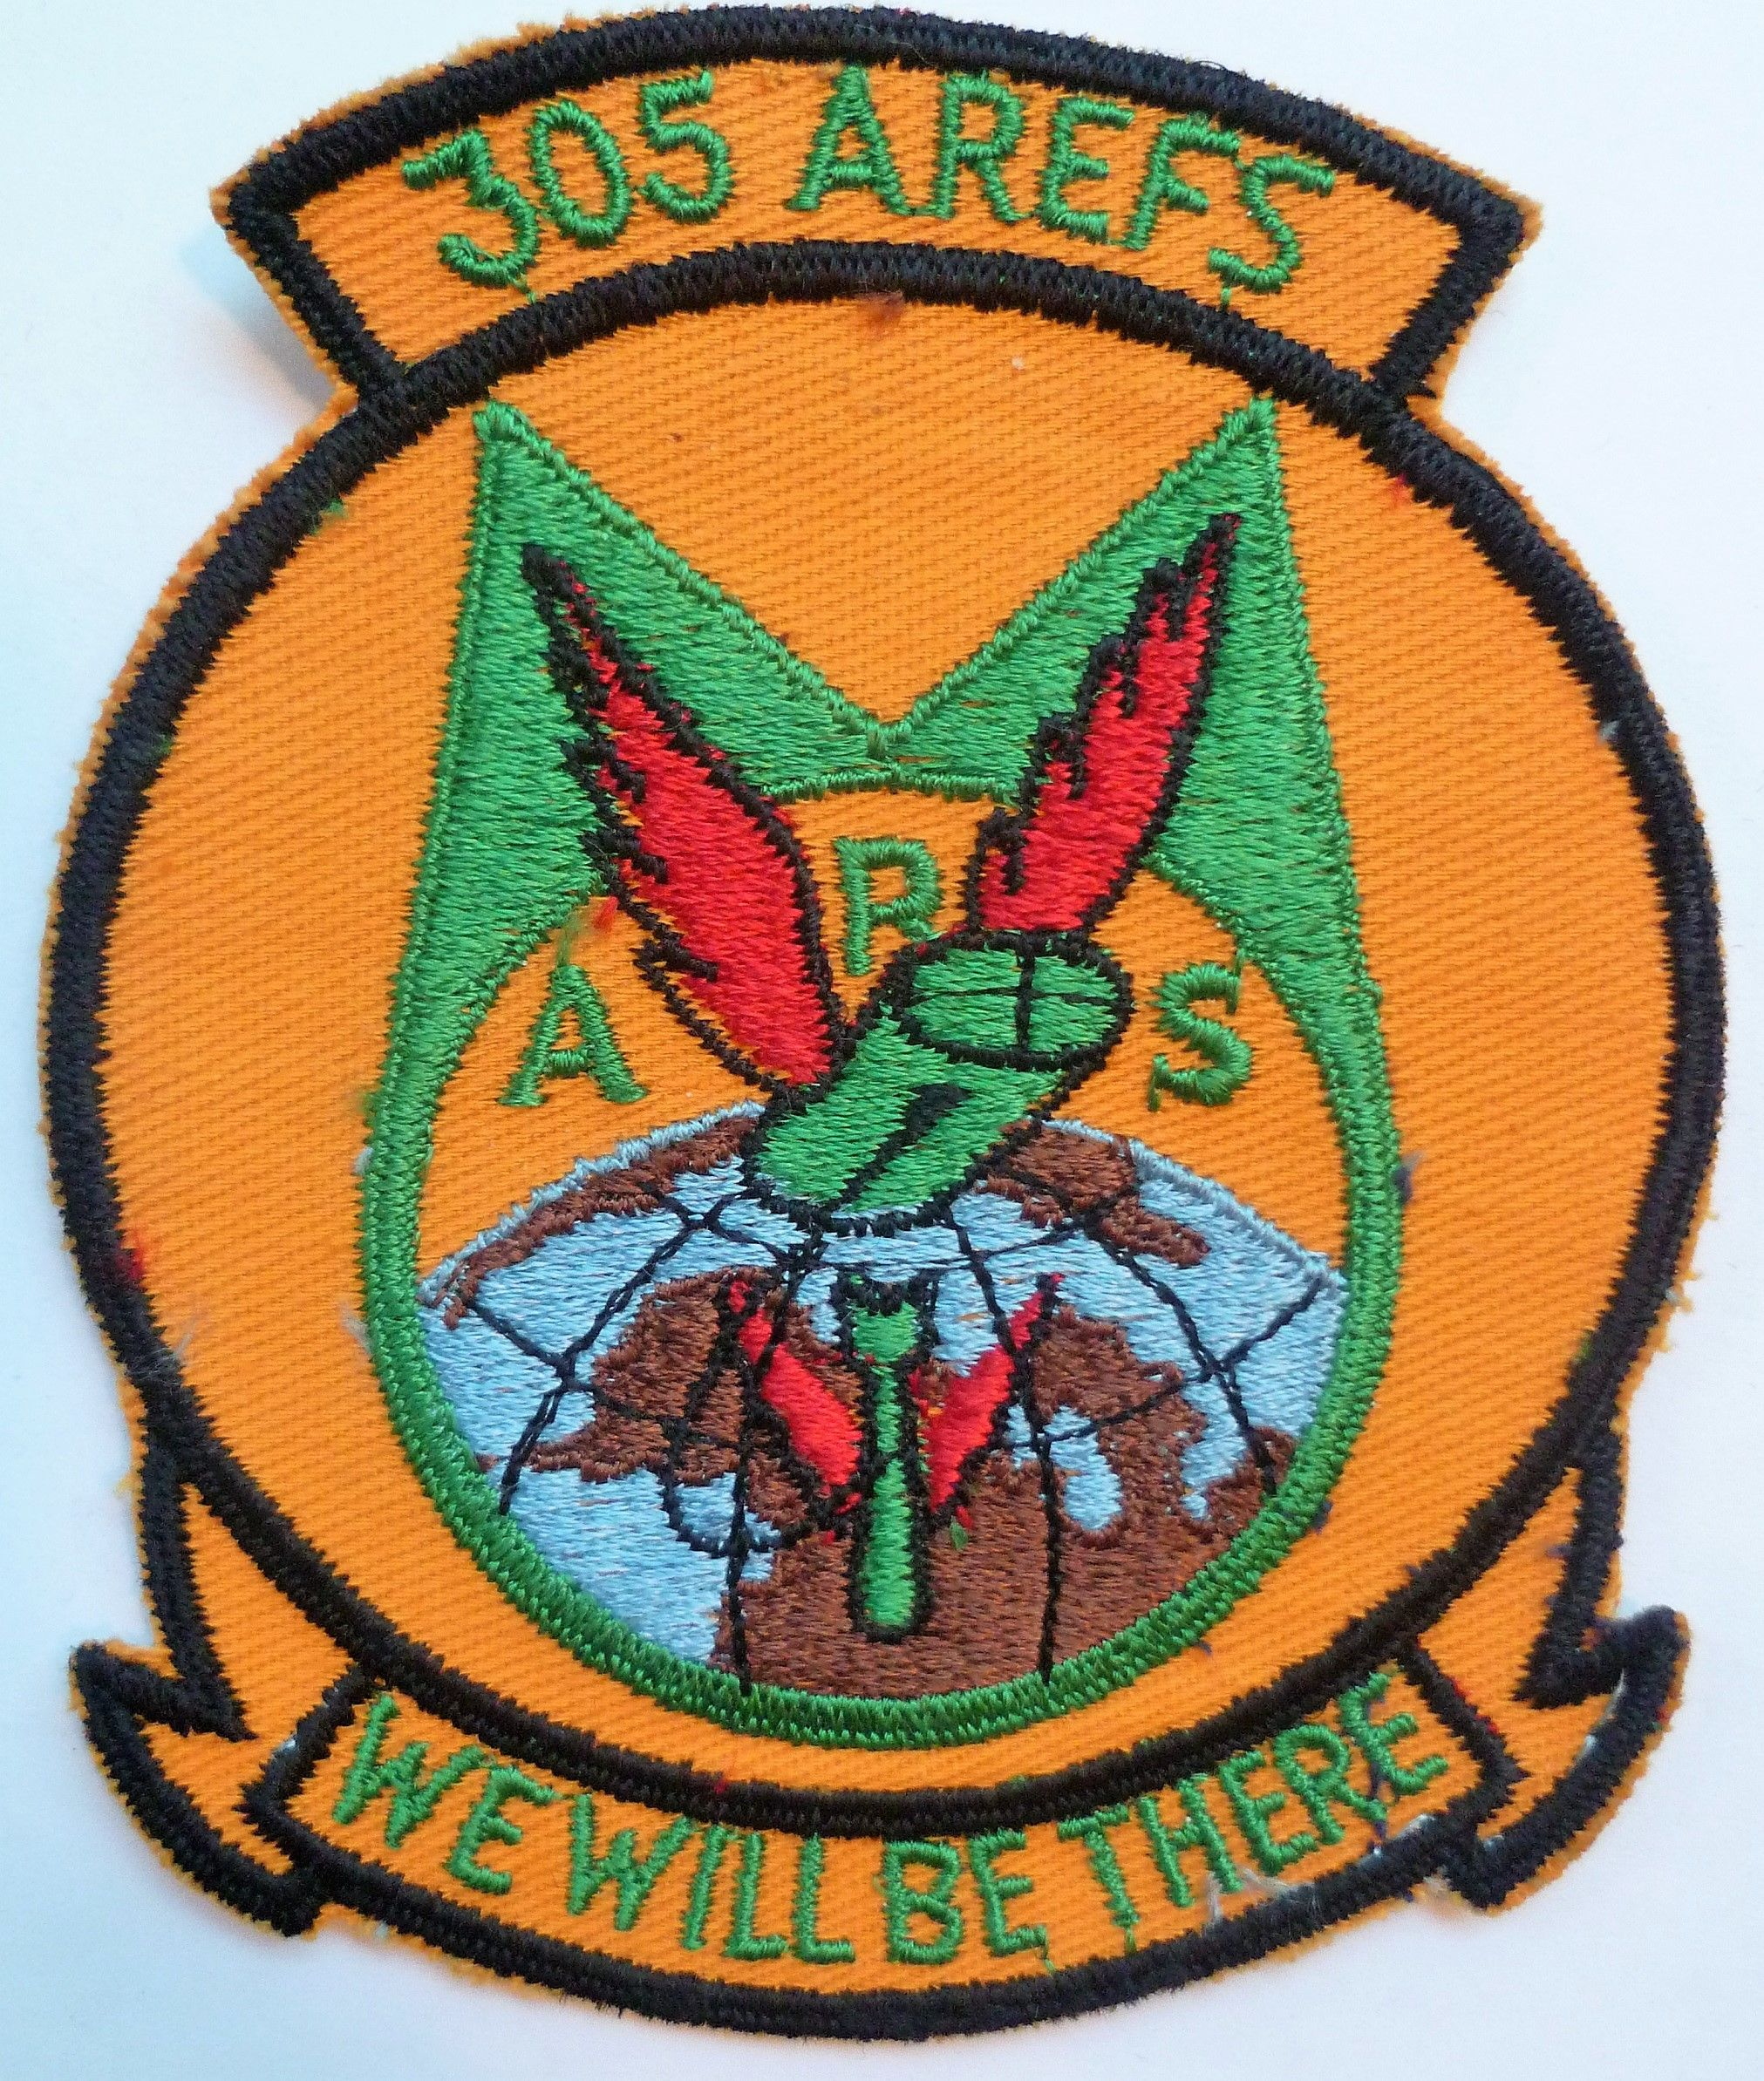 USAF 305th Air Refueling Squadron Cloth Patch Old United